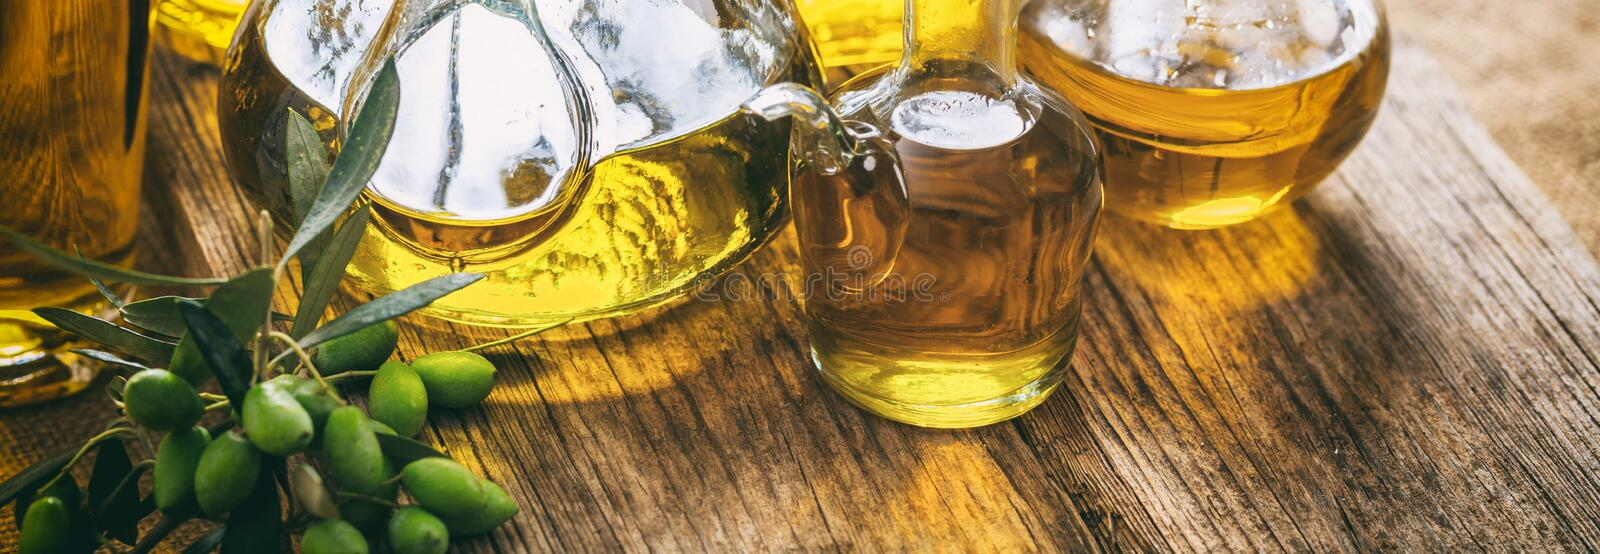 Olive oil in glass bottles on wooden table, banner, closeup view royalty free stock images